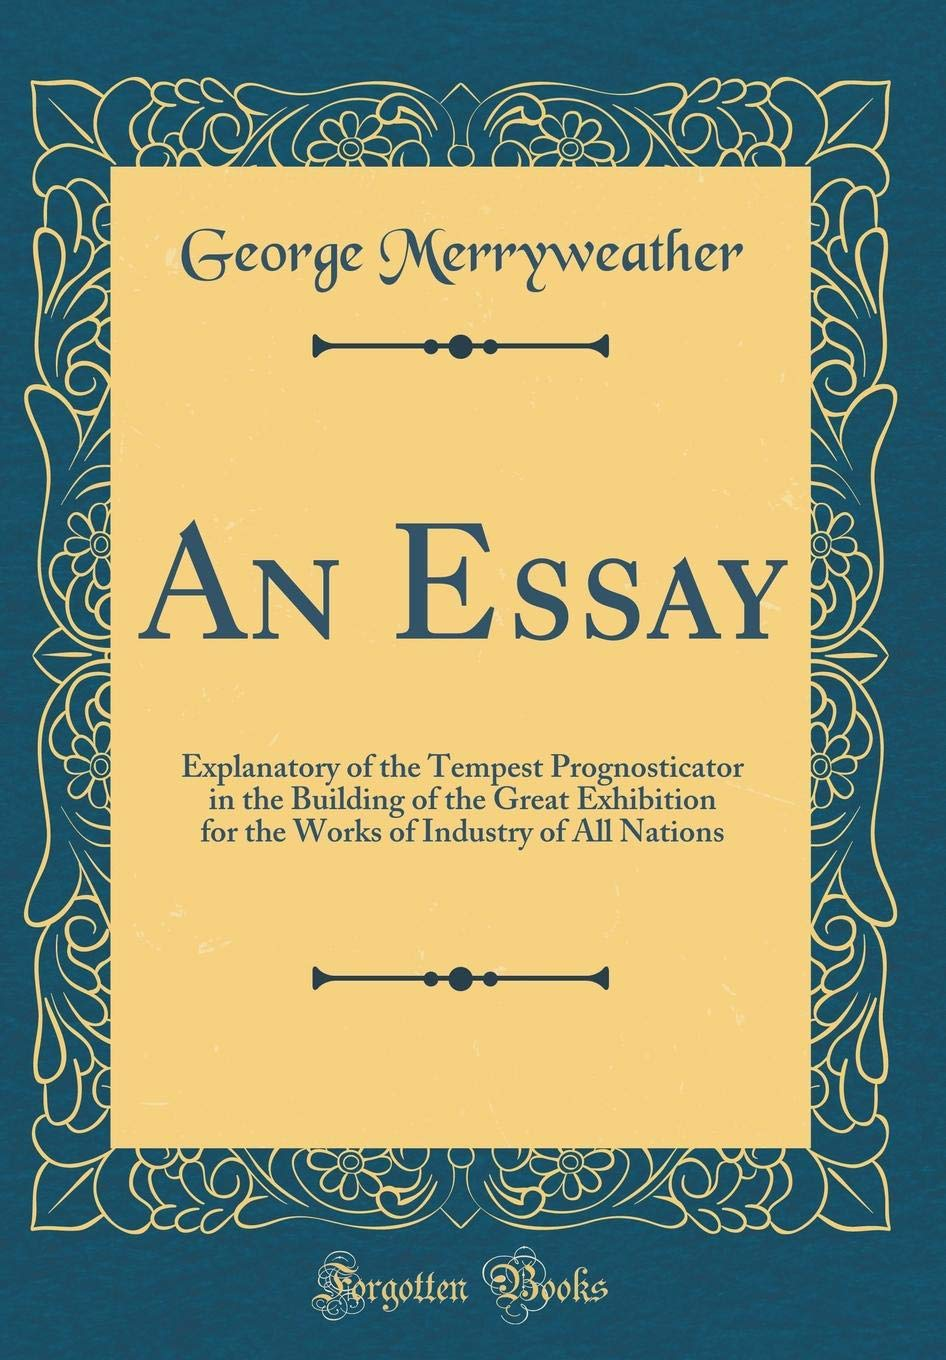 An Essay: Explanatory of the Tempest Prognosticator in the Building of the Great Exhibition for the Works of Industry of All Nations (Classic Reprint) PDF